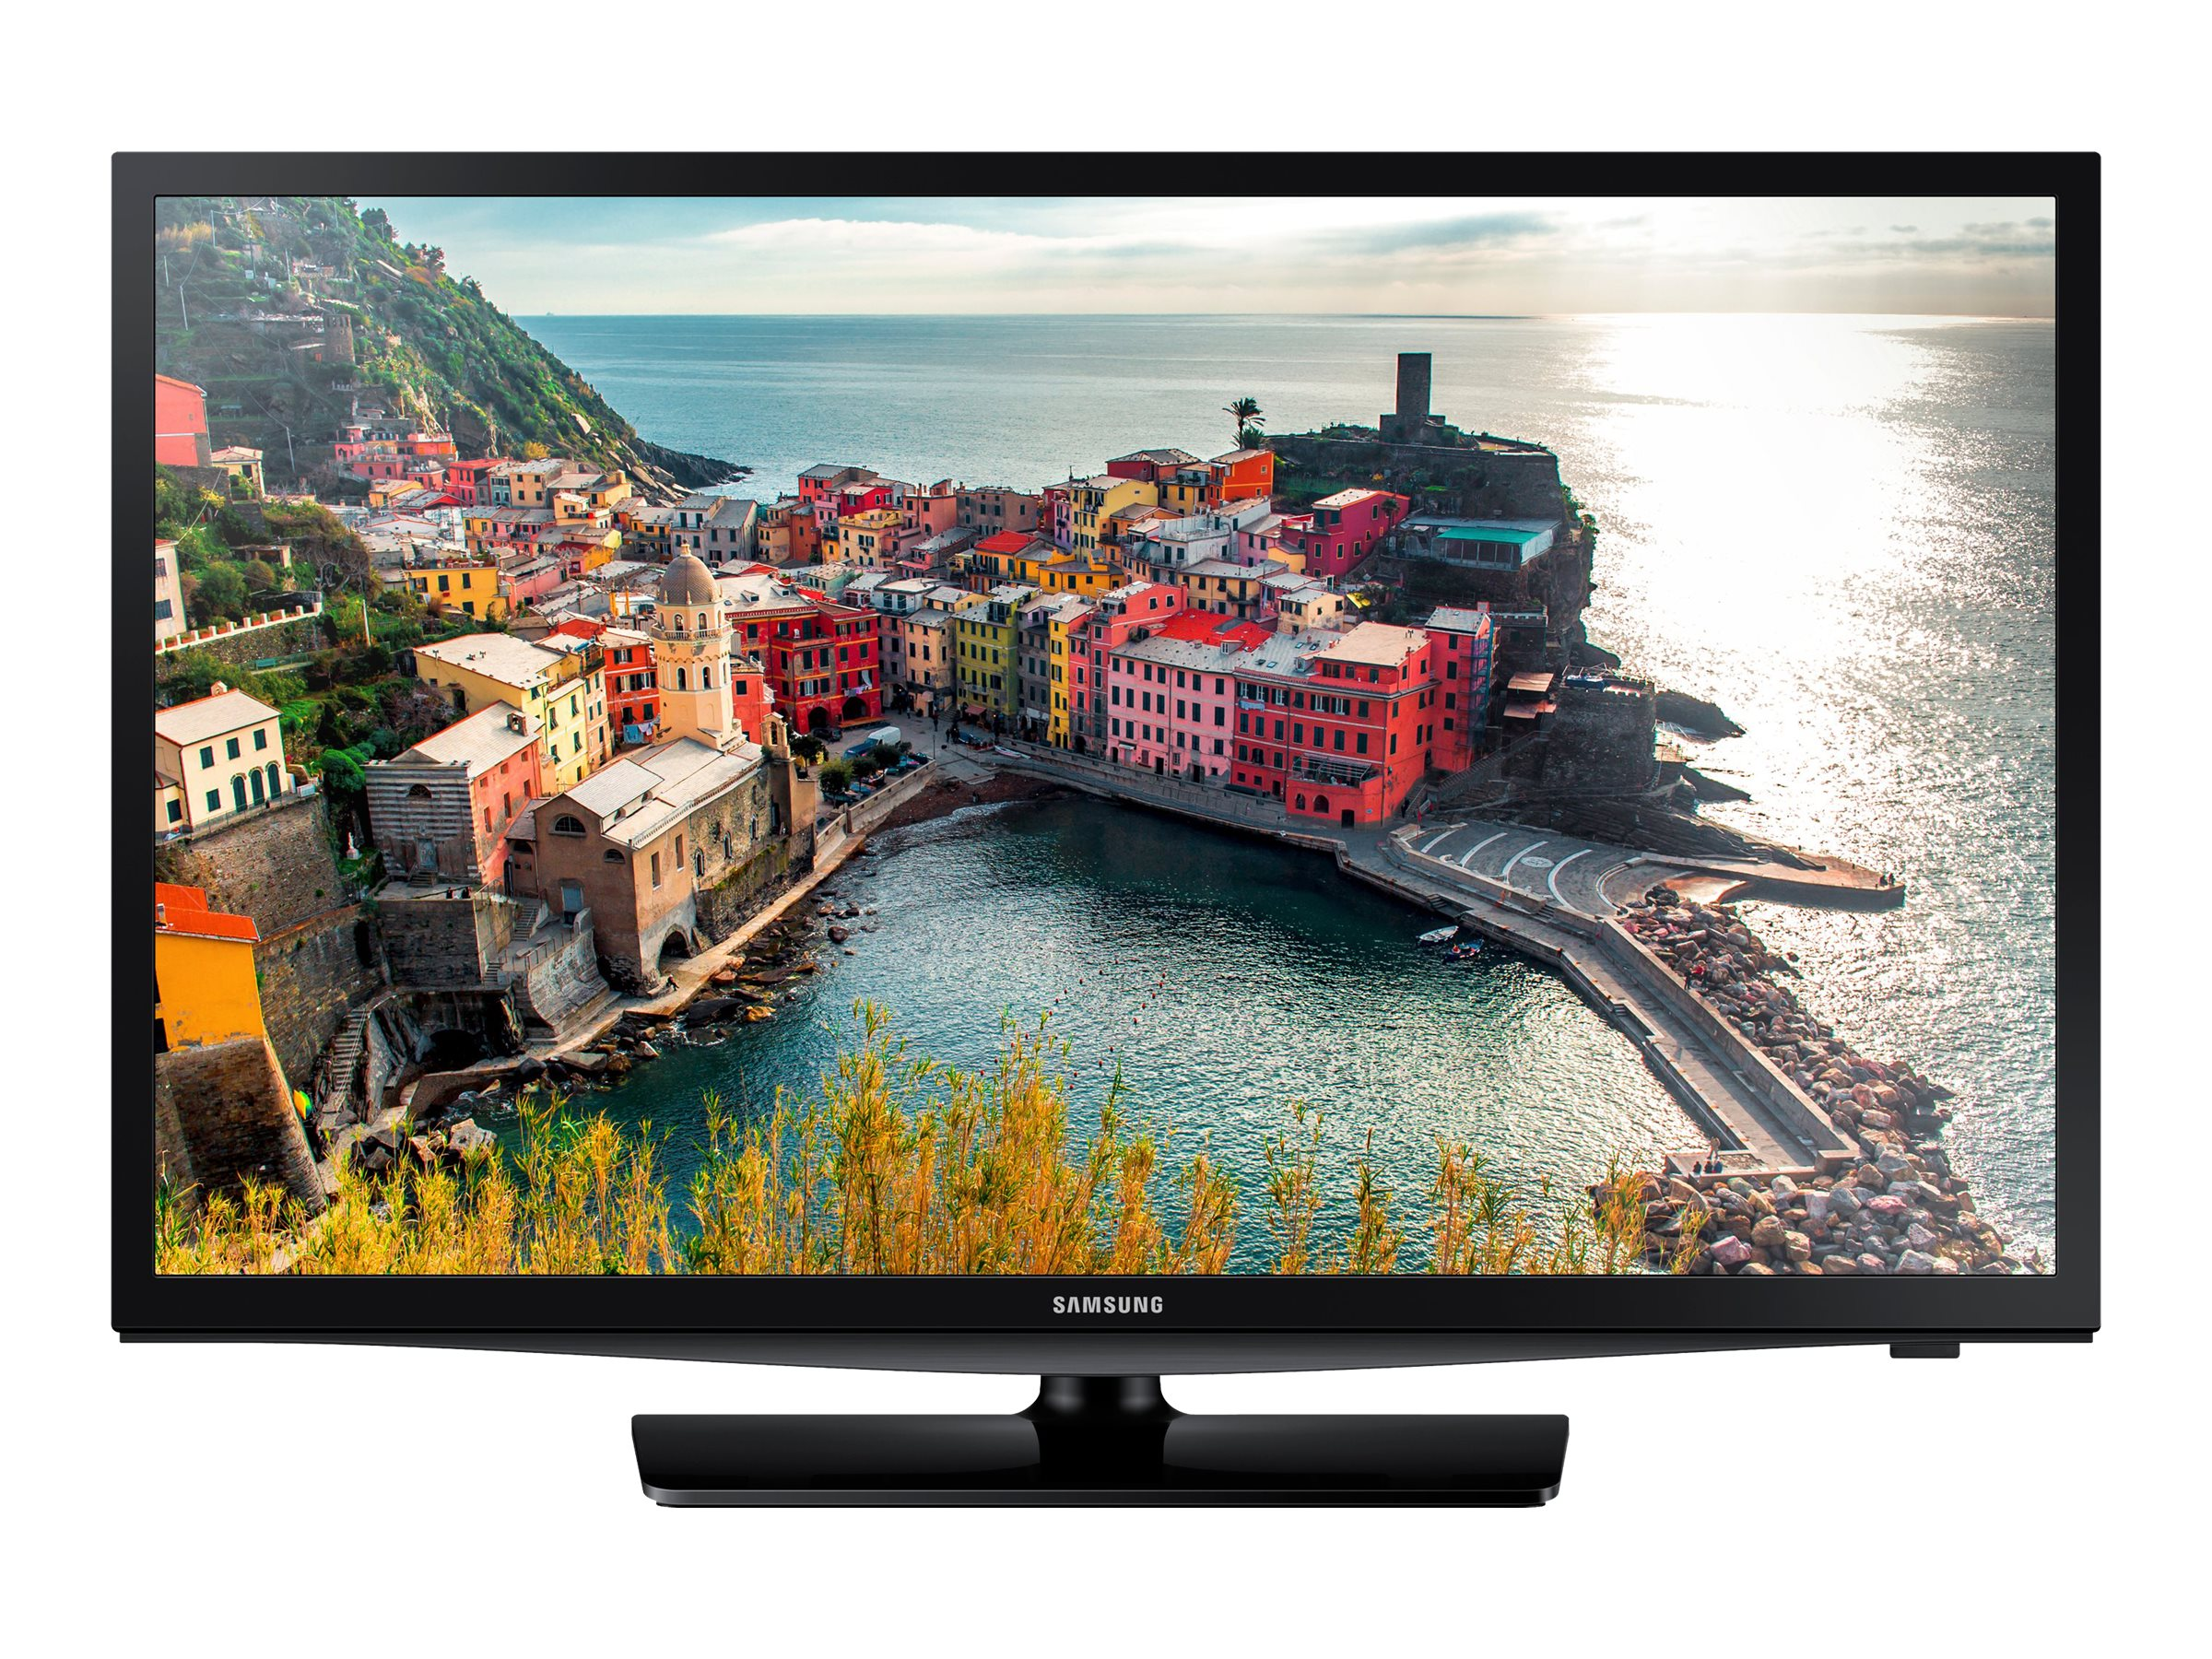 Samsung 24 HD470 Series LED-LCD Hospitality TV, Black, HG24ND470AF, 28185174, Televisions - LED-LCD Commercial